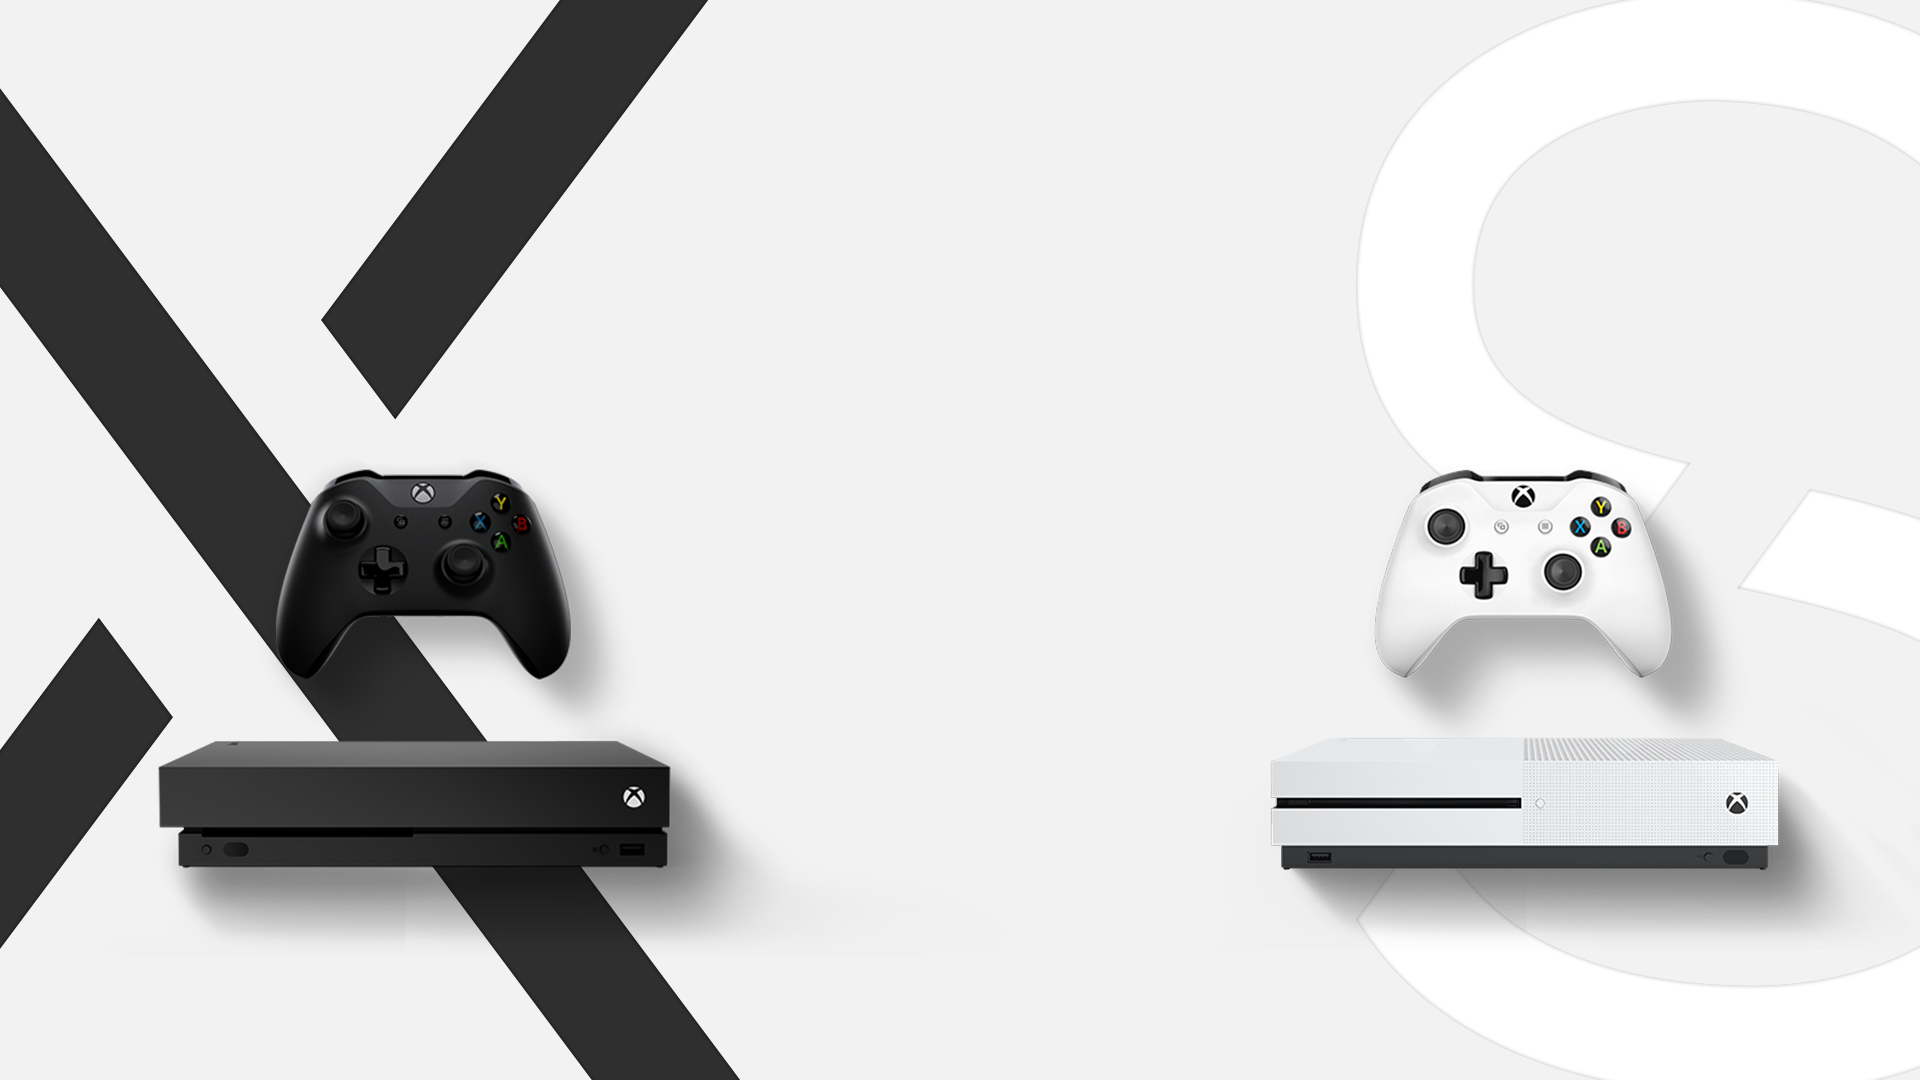 xbox one x and xbox one s consoles [ 1920 x 1080 Pixel ]